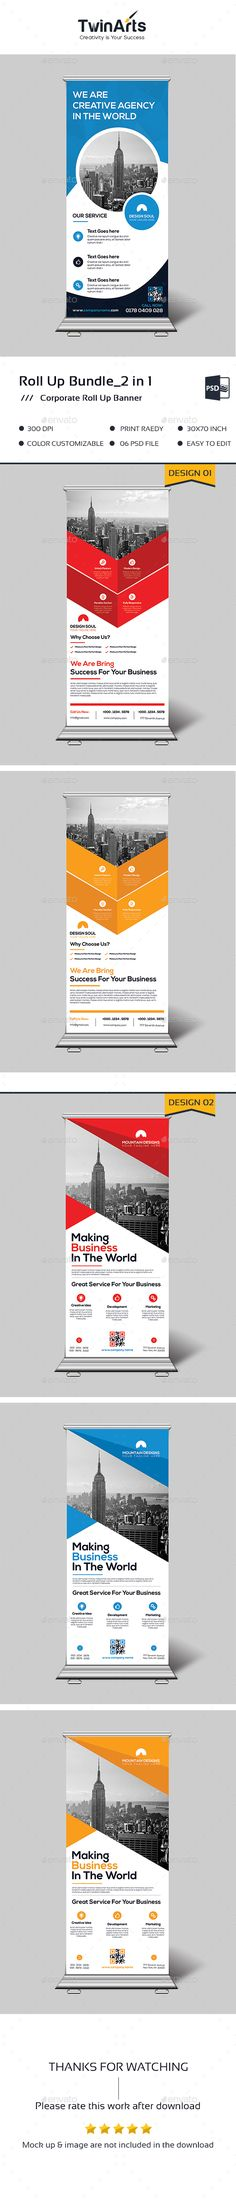 Roll Up Banner Bundle_2 in 1 by Twin-Arts Roll Up Banner Bundle_2 in 1 This is a Corporate Roll Up Banner. This template download contains a 300 dpi print-ready CMYK psd f